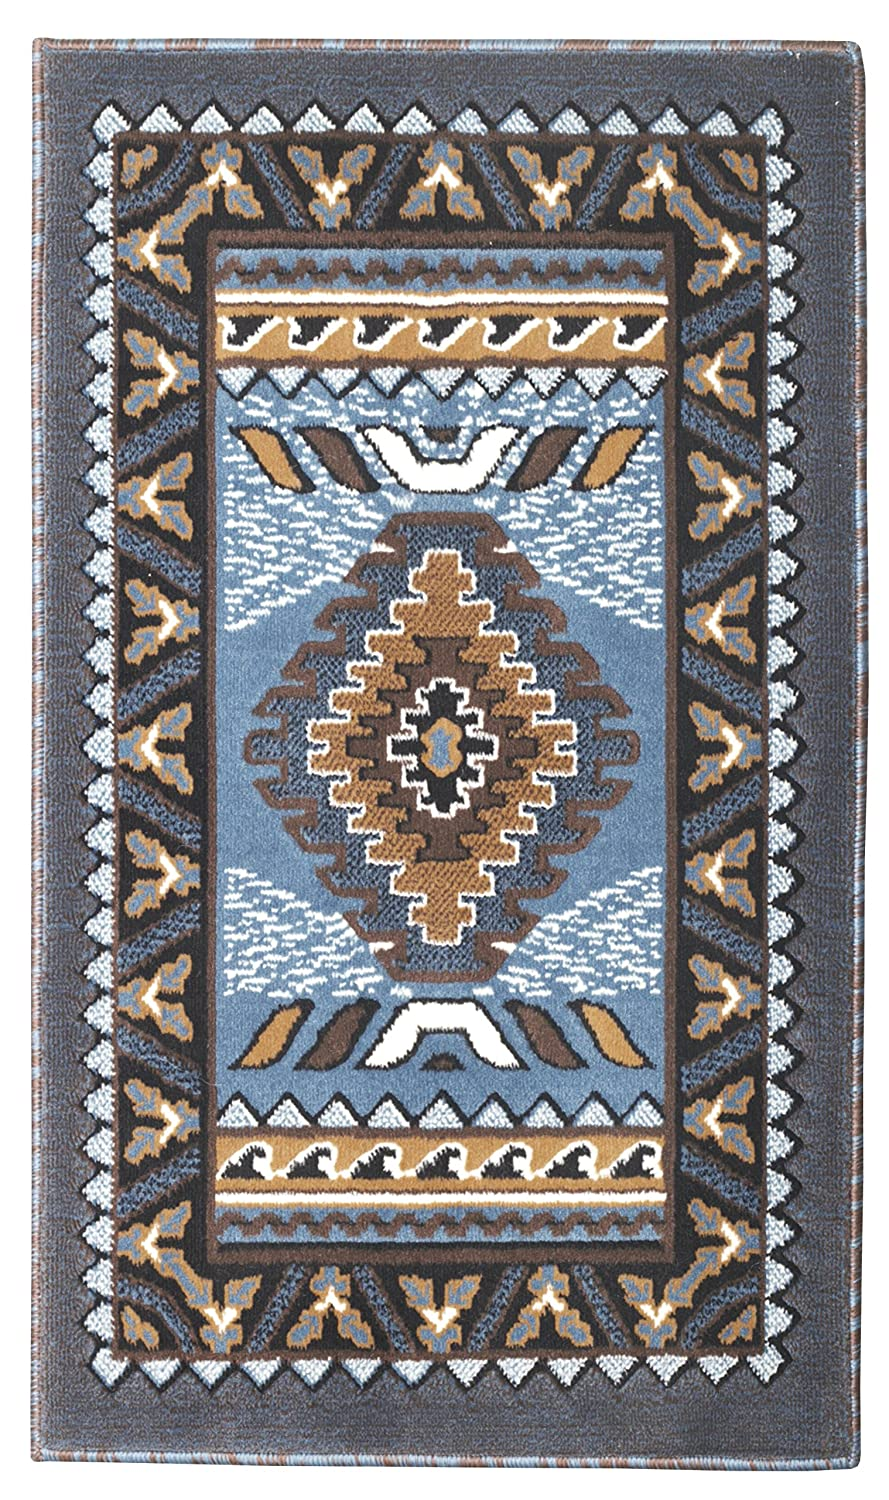 Rugs 4 Less Collection Southwest Native American Indian Door Mat Area Rug Design R4L 143 Light Blue (2